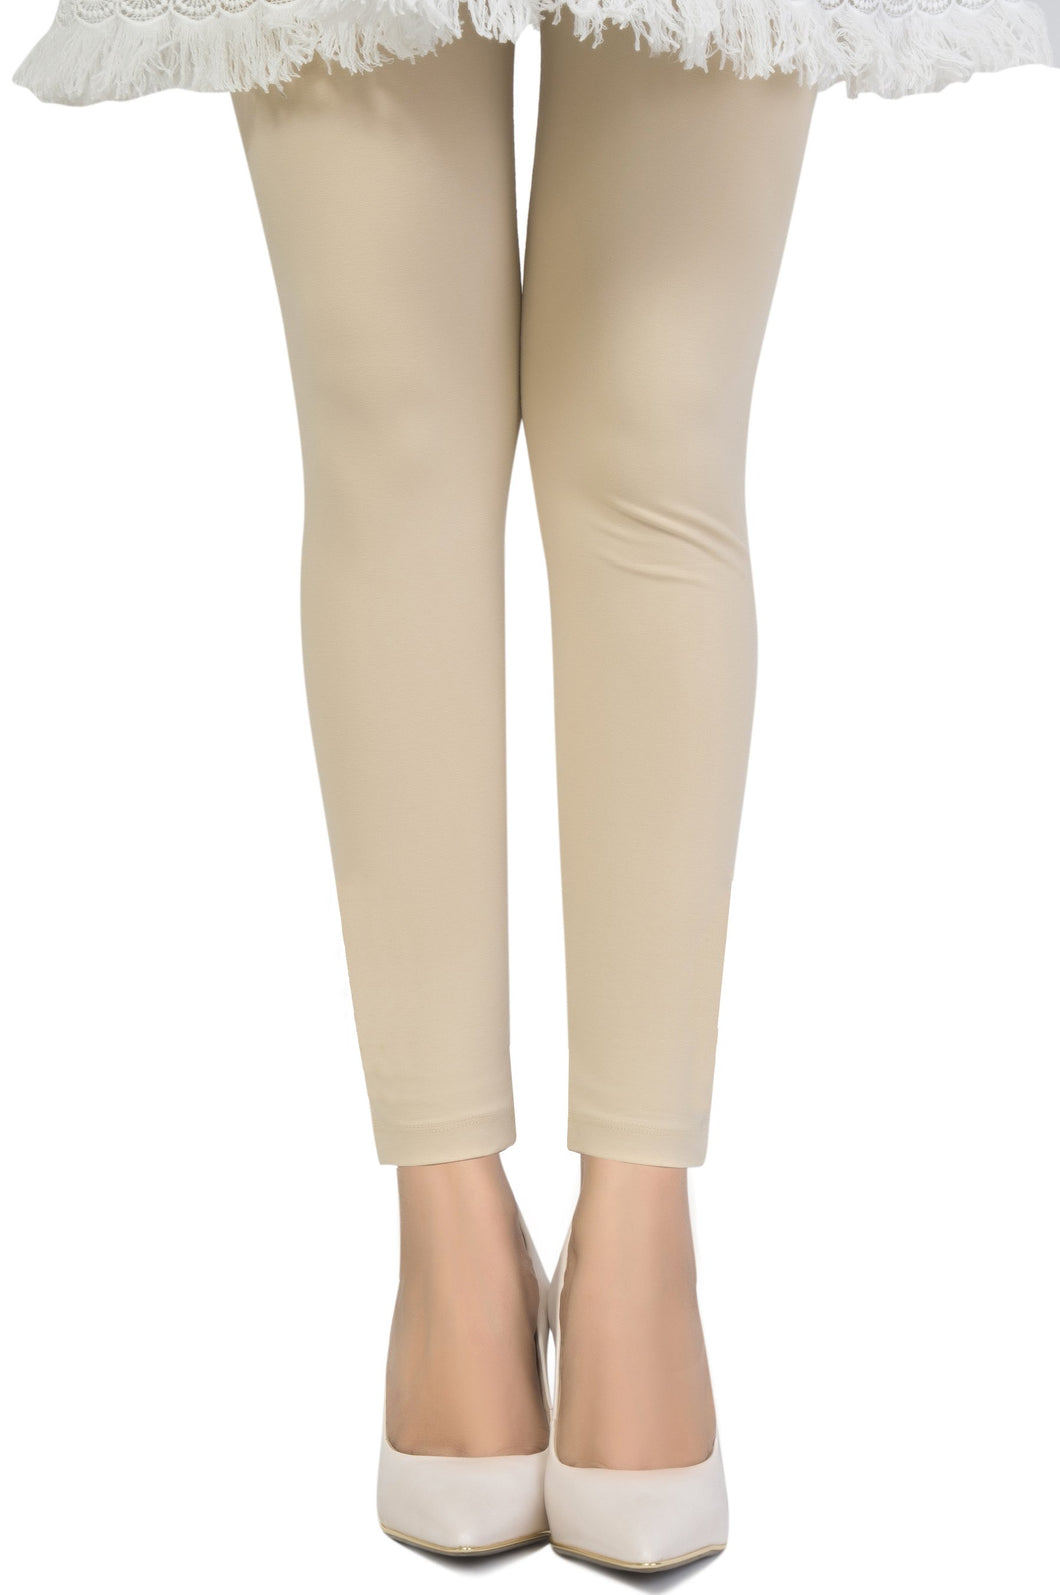 Zeen Cotton Legging - Sand Dollar